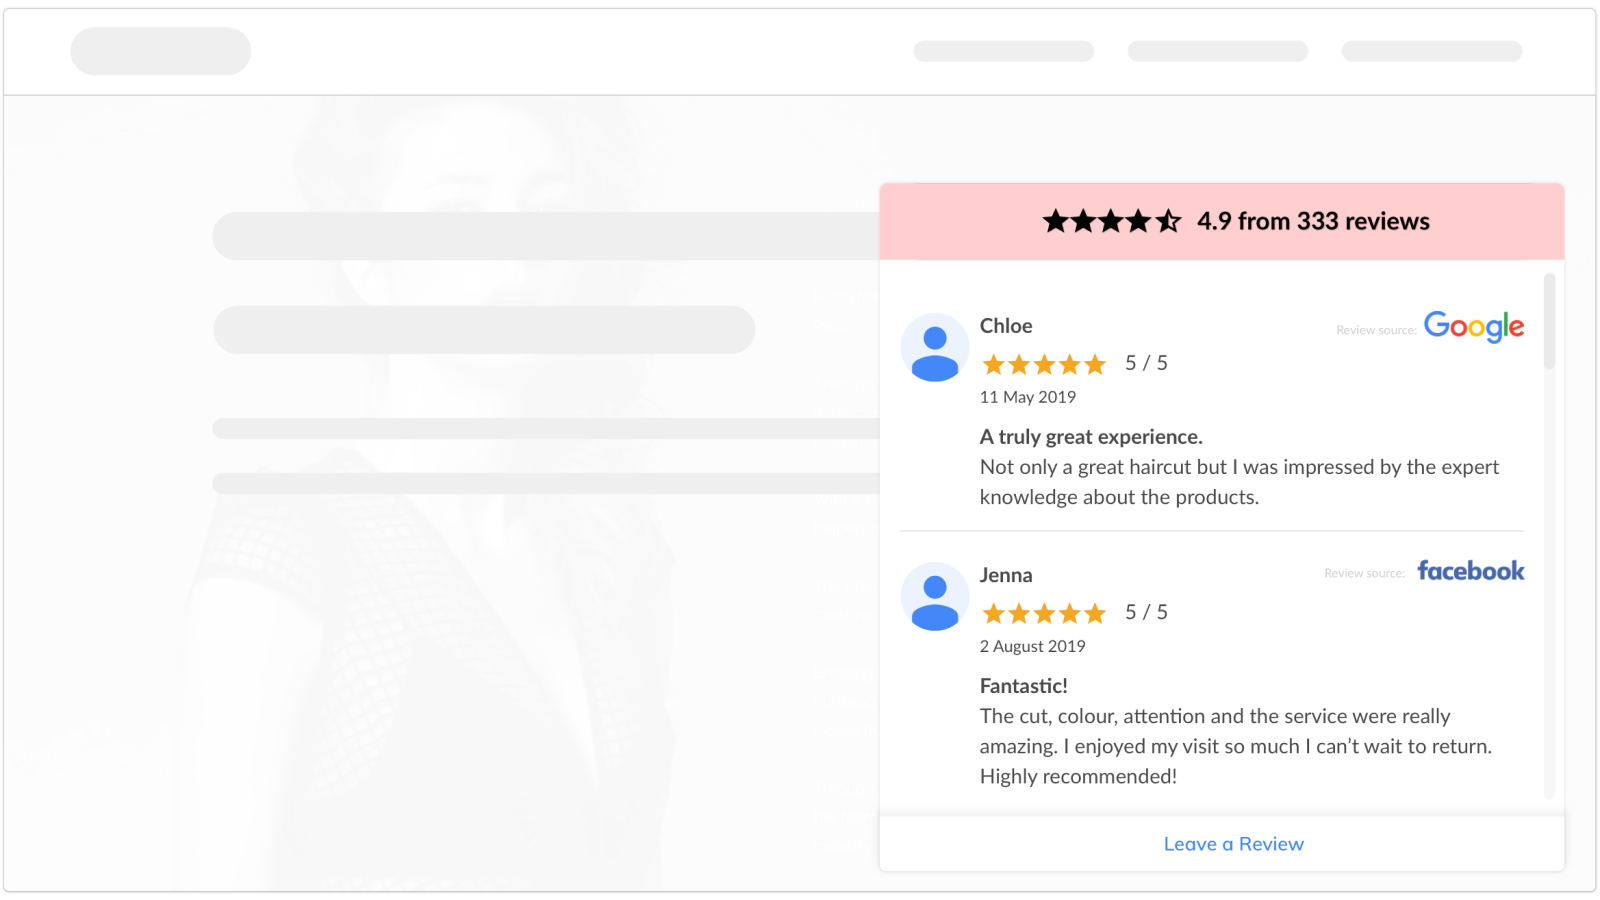 REPLY TO REVIEWS IN ONE DASHBOARD